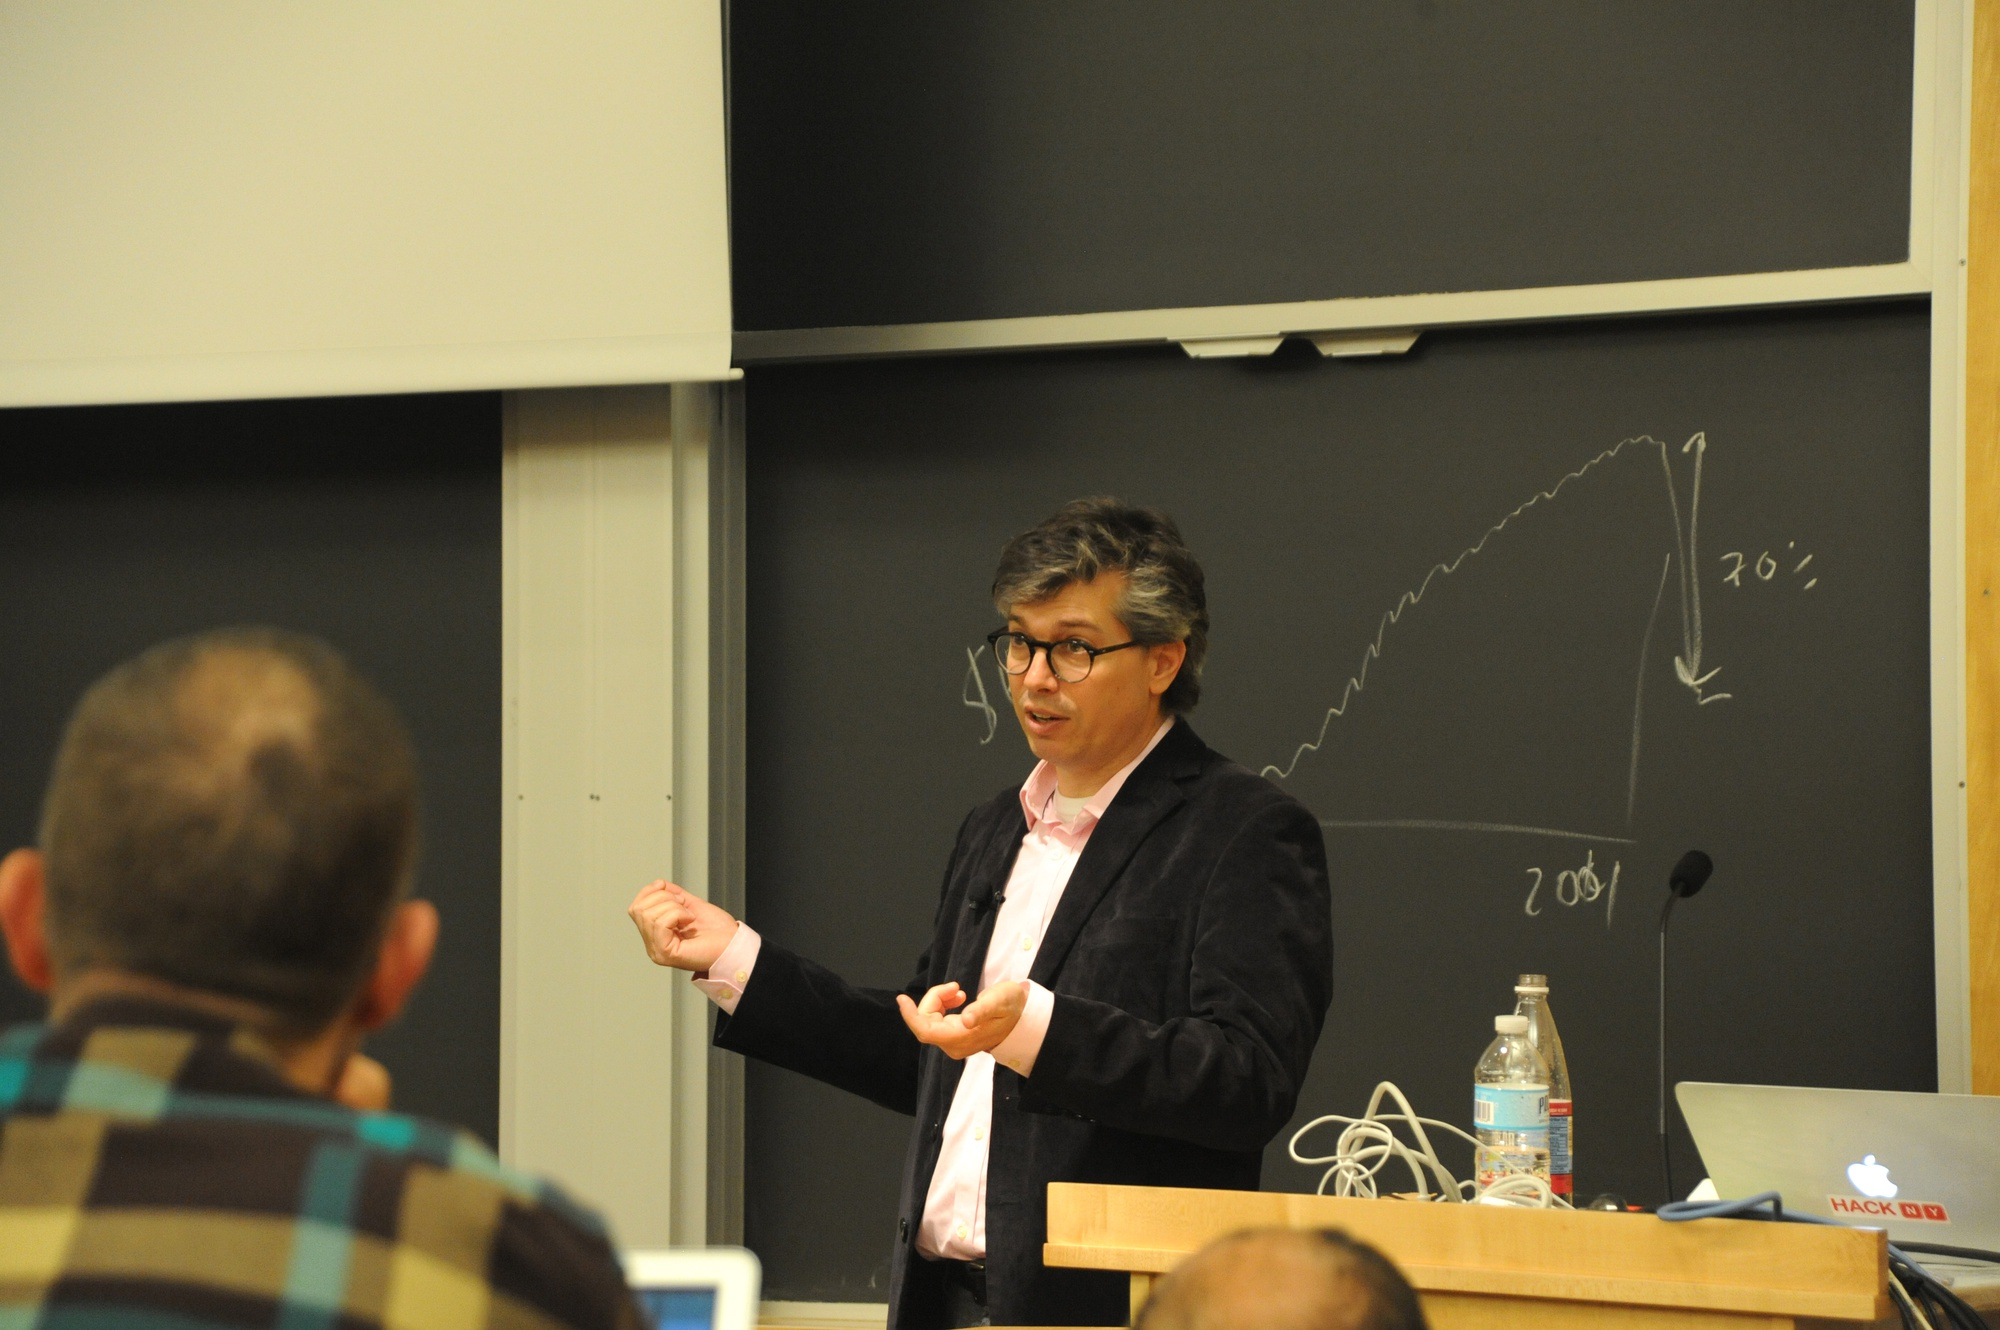 Chris Wiggins, chief data scientist at The New York Times, speaks about the development of data, from segments in the 19th century to algorithms today, in Maxwell-Dworkin G115 on Friday afternoon.